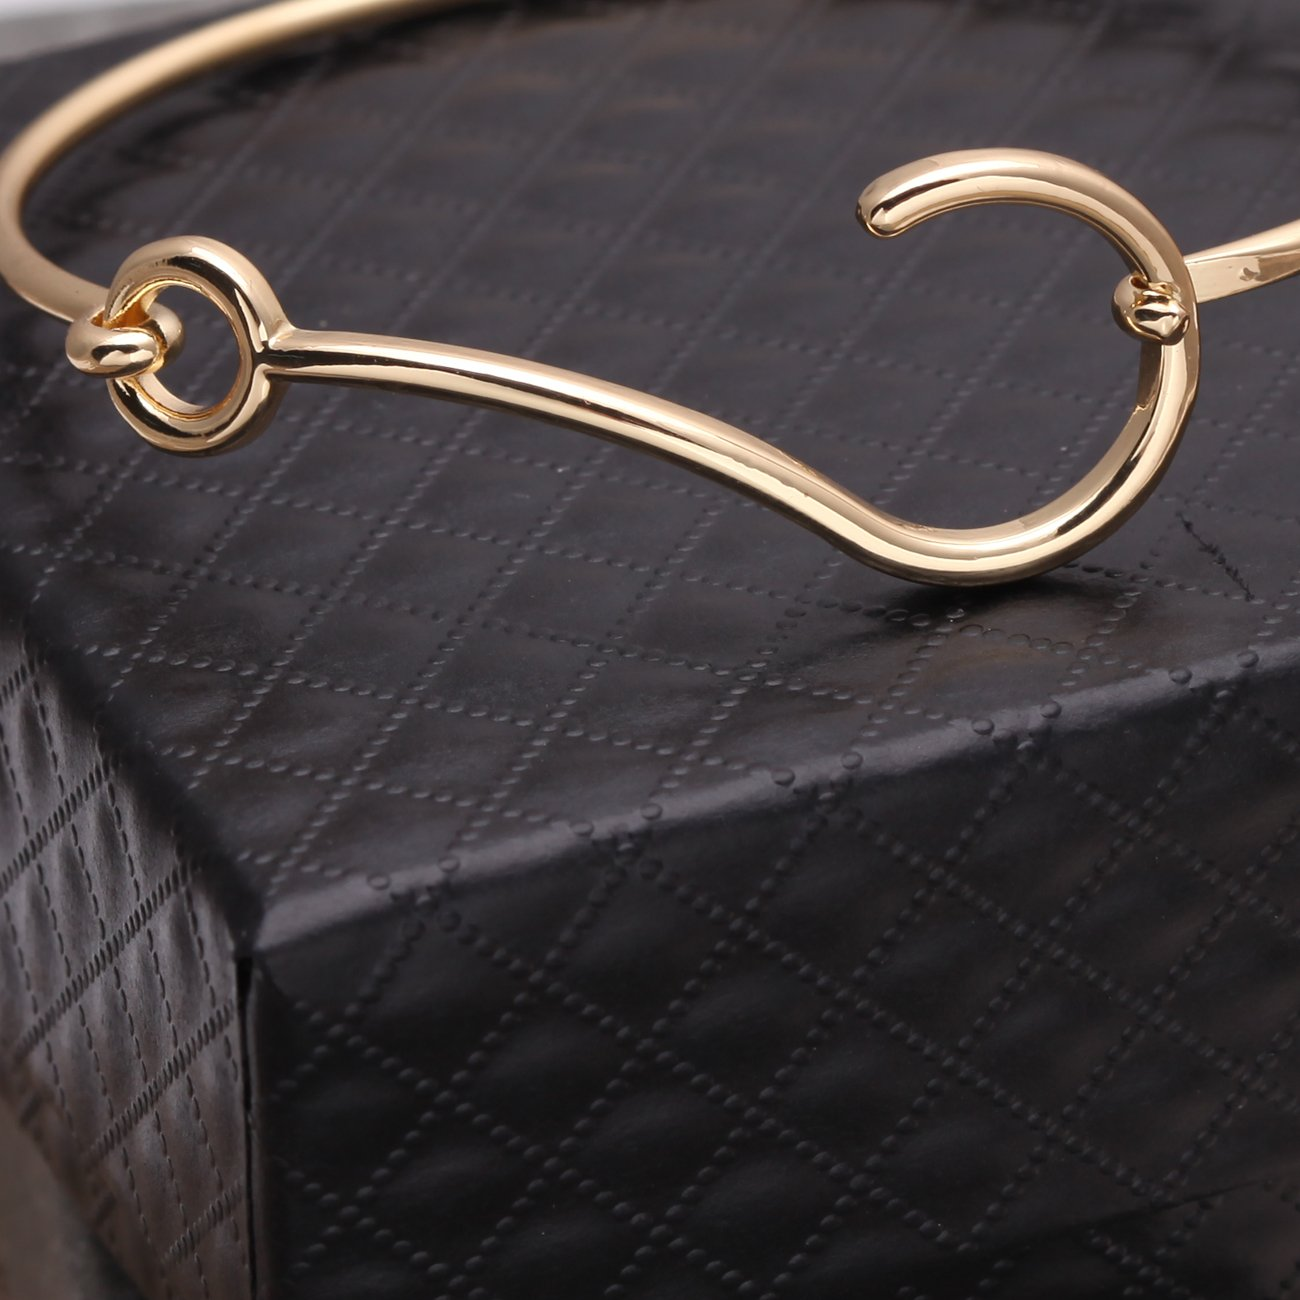 RUXIANG Fish Fishhook Question Mark Bangle Bracelets for Adults